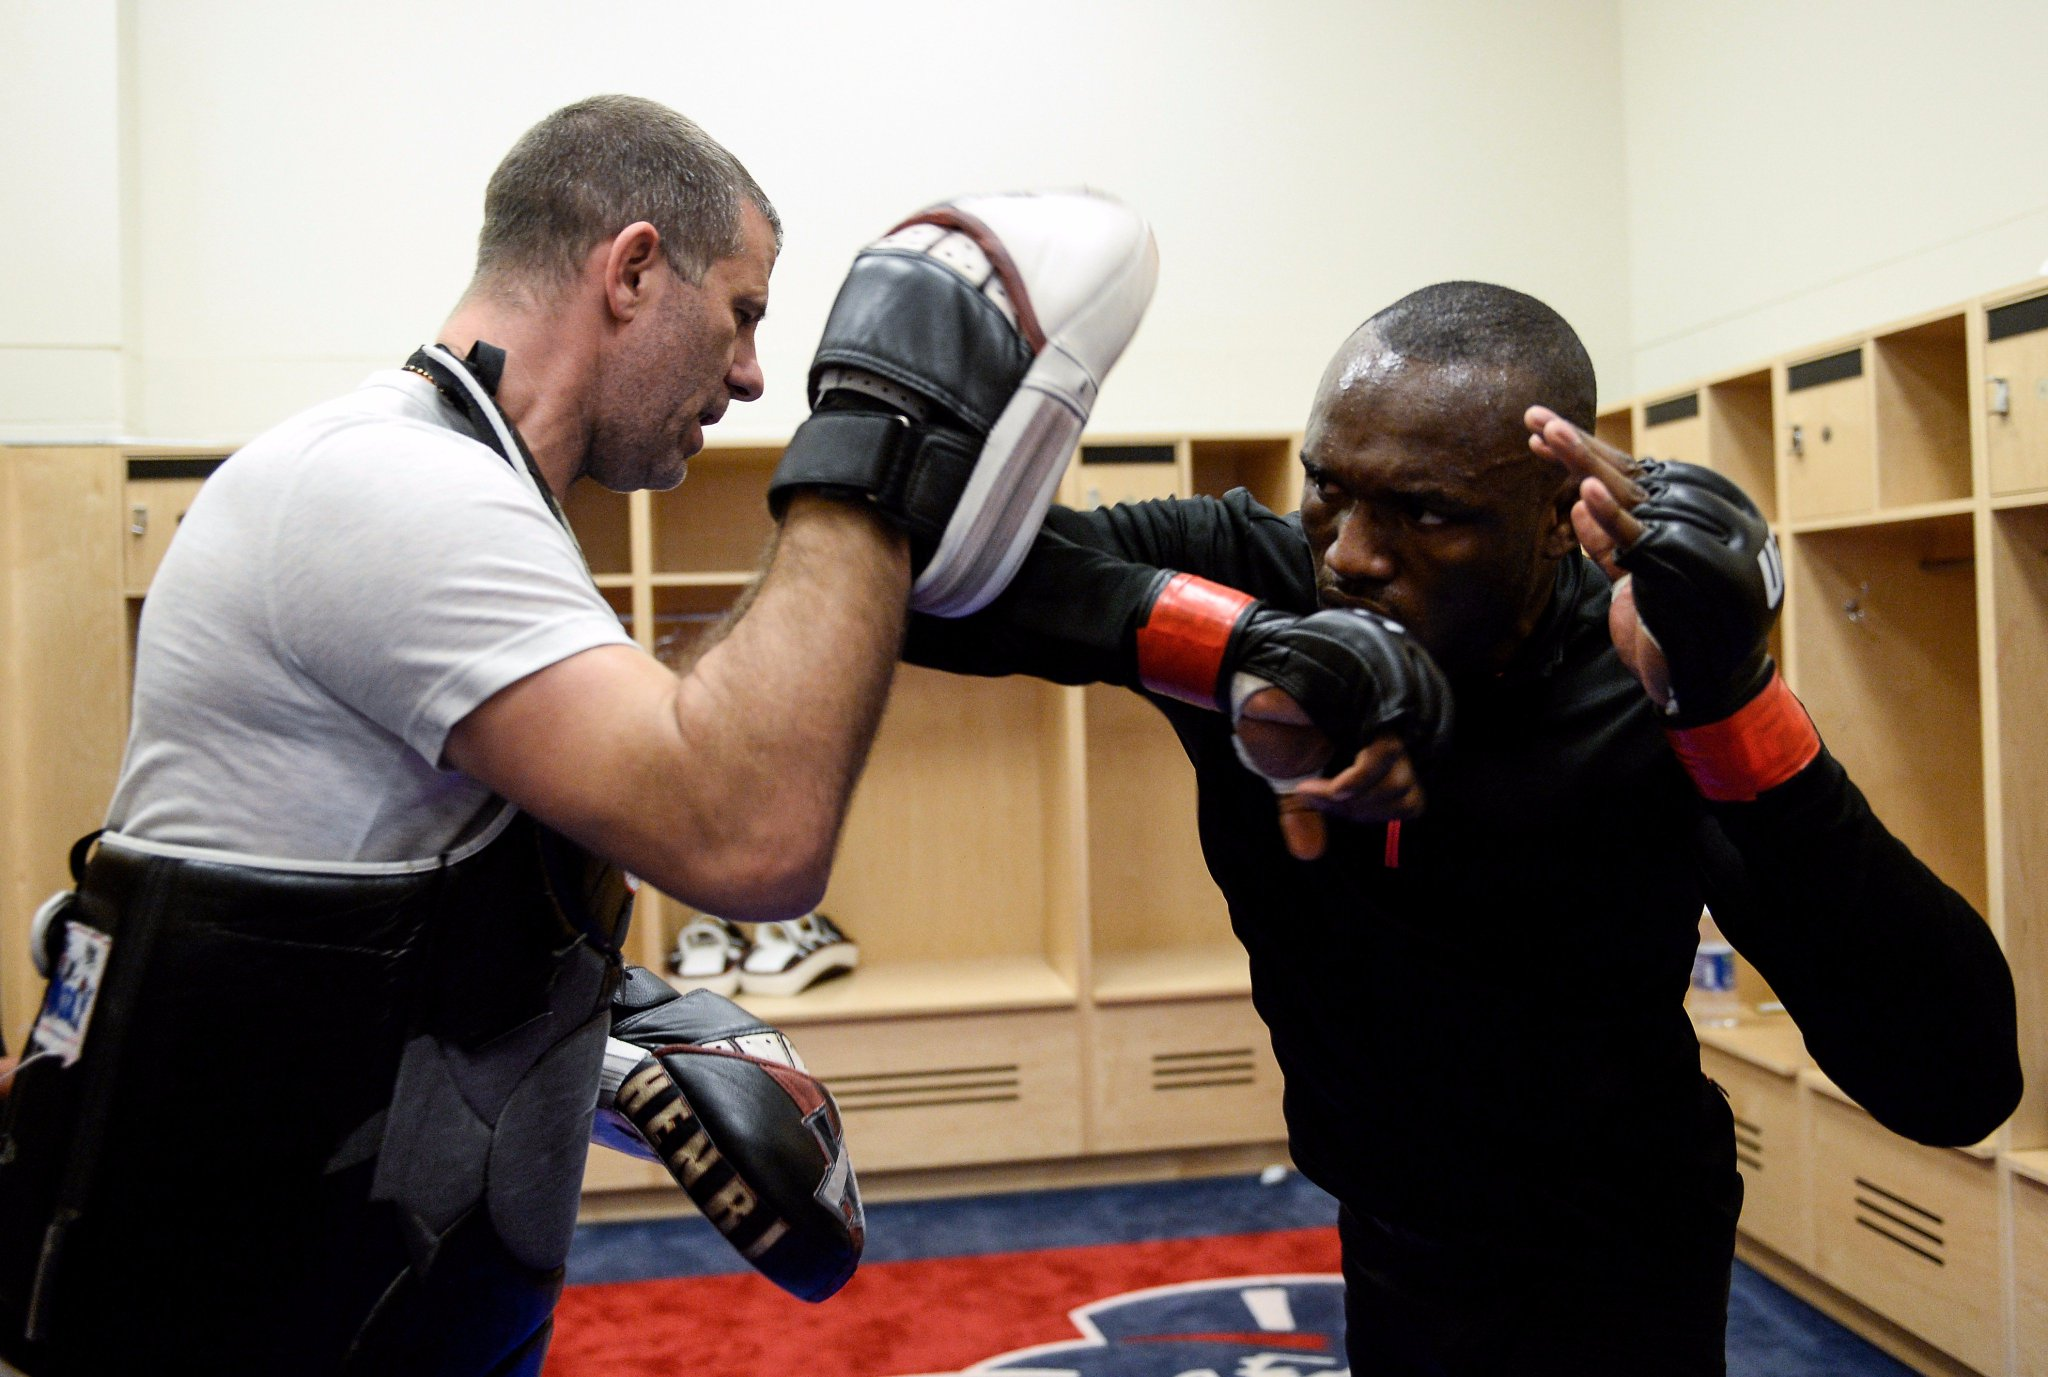 Ready for the #NigerianNightmare?  @Usman84Kg takes the Octagon NEXT! #UFCPittsburgh https://t.co/2vRJ9jGF3I